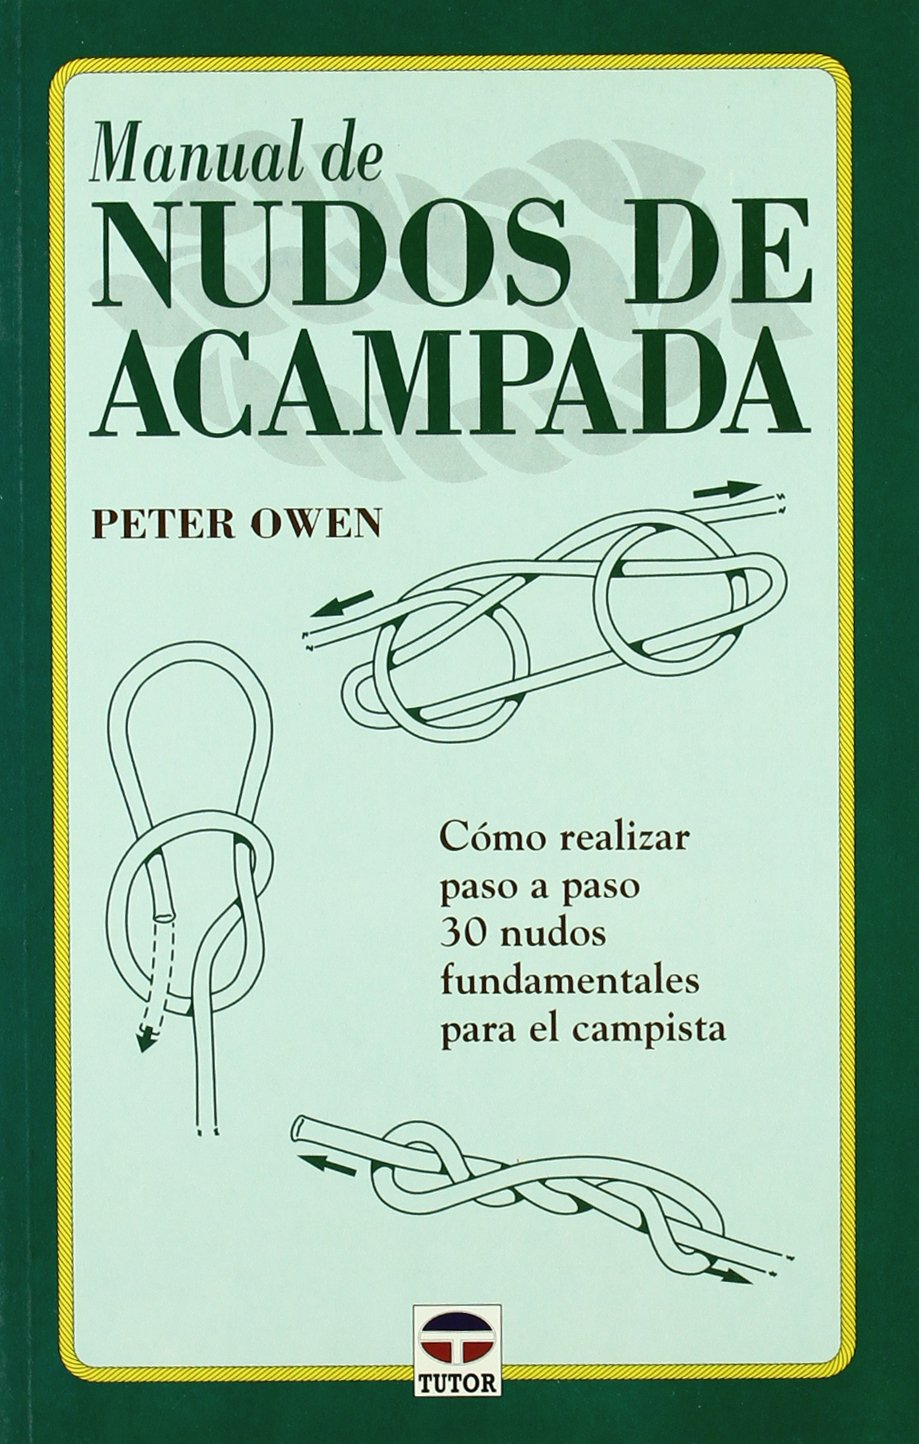 Manual de Nudos de Acampada (Spanish Edition) by Tutor S.A.